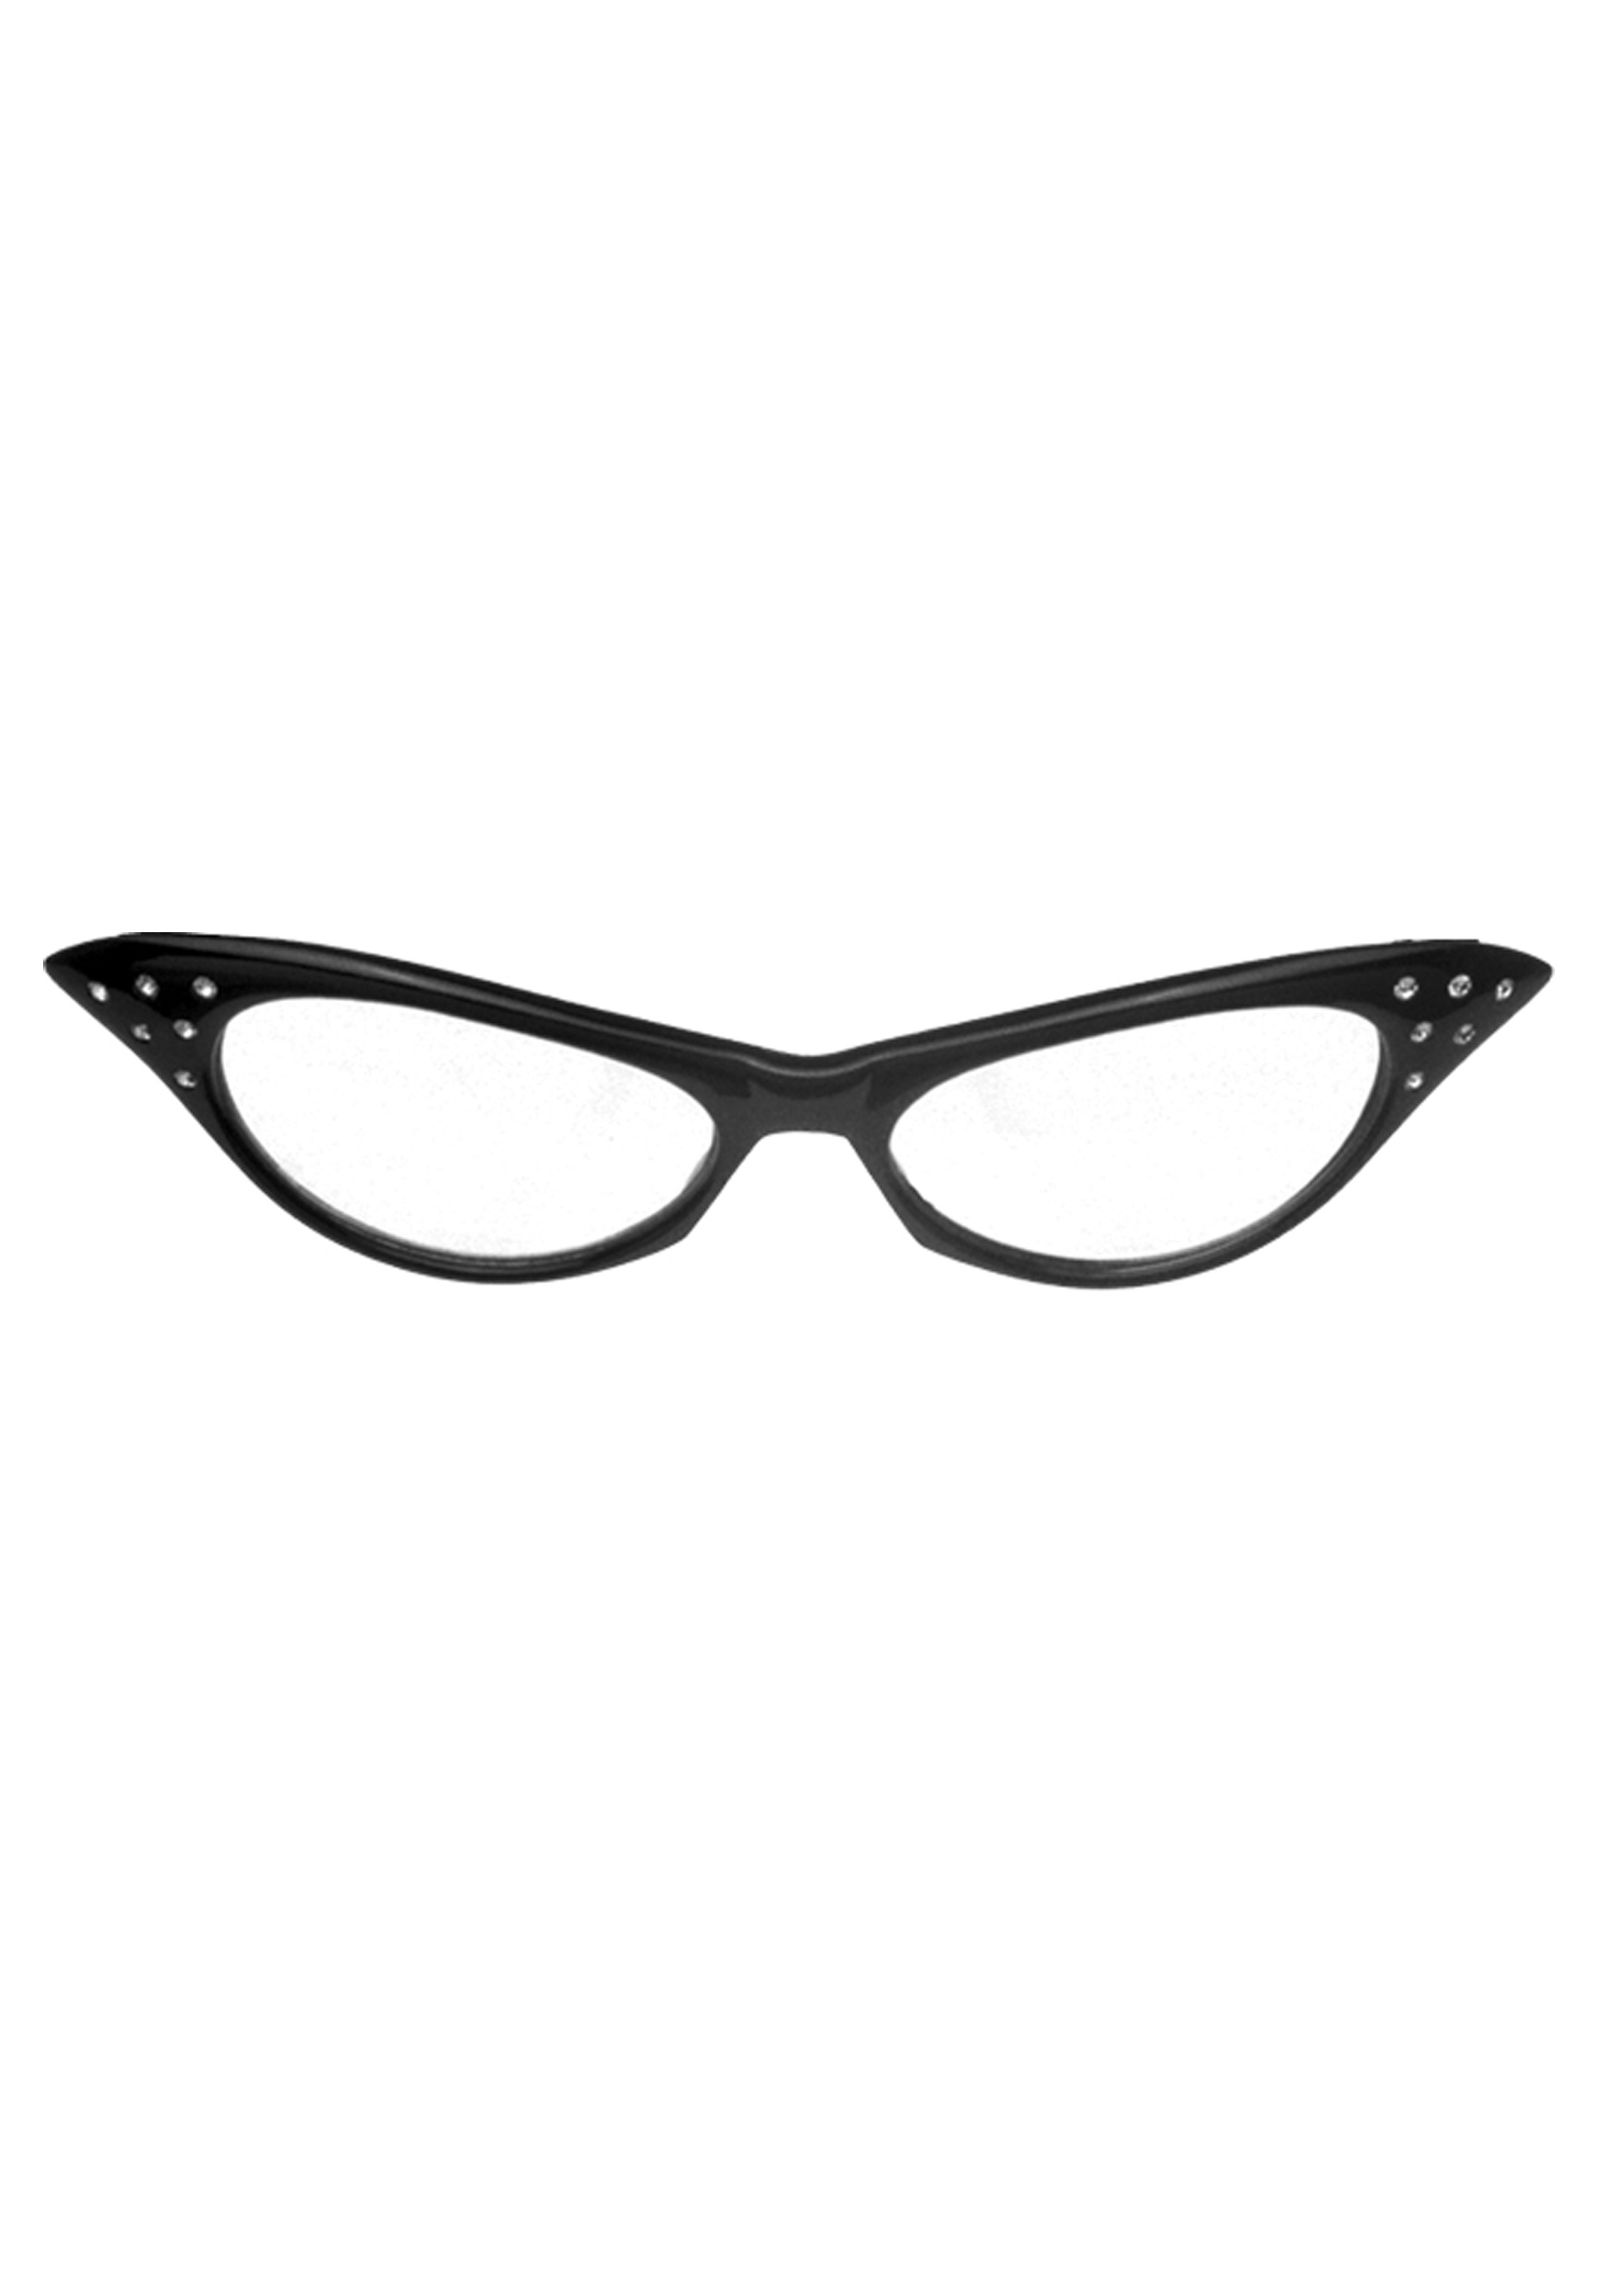 Black Frame Accessory Glasses : S Black Frame Glasses Zoom Free Images at Clker.com ...